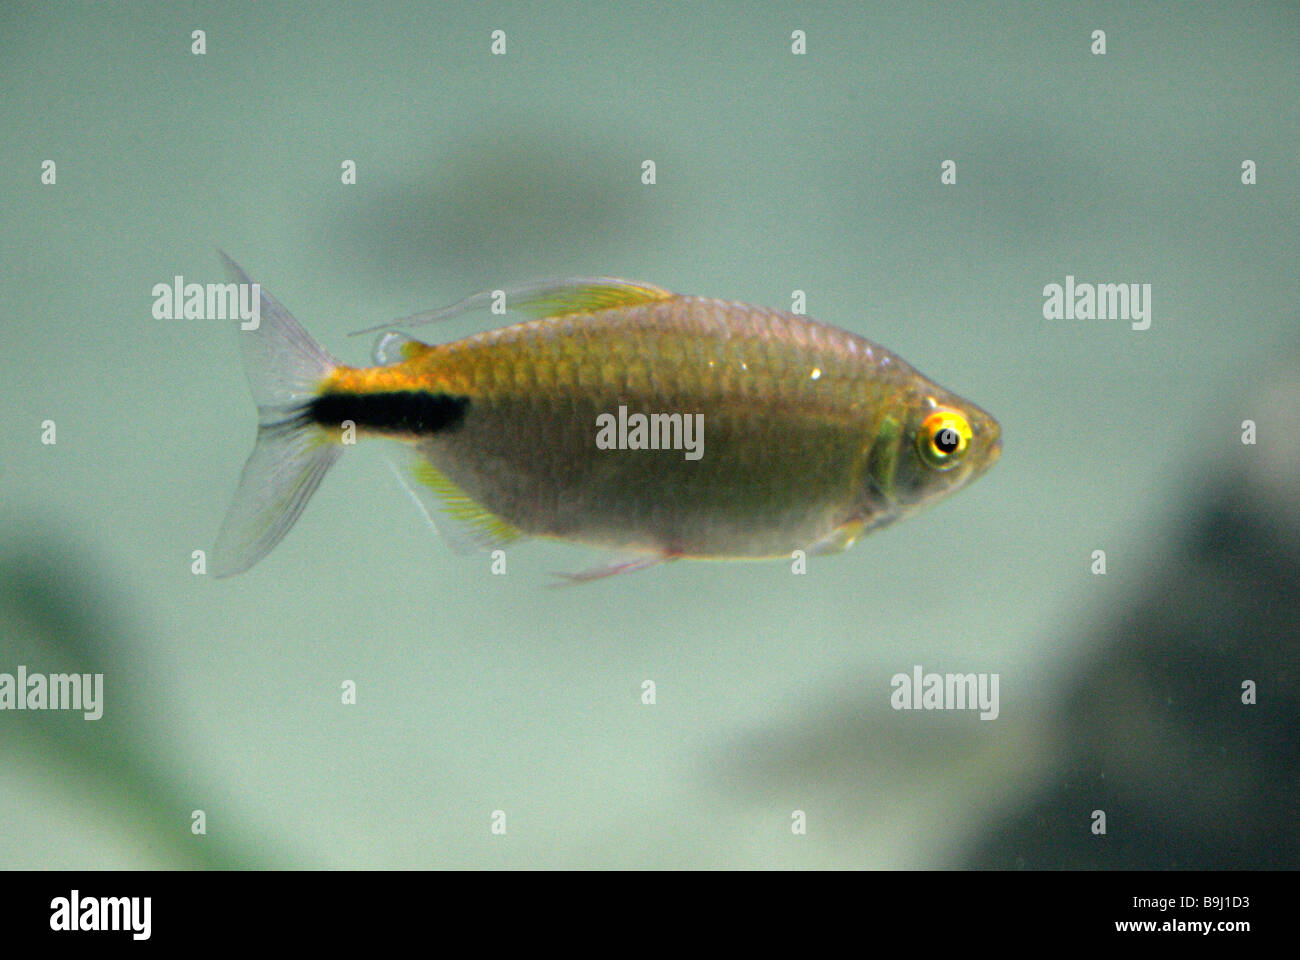 Tropical Fish - Stock Image